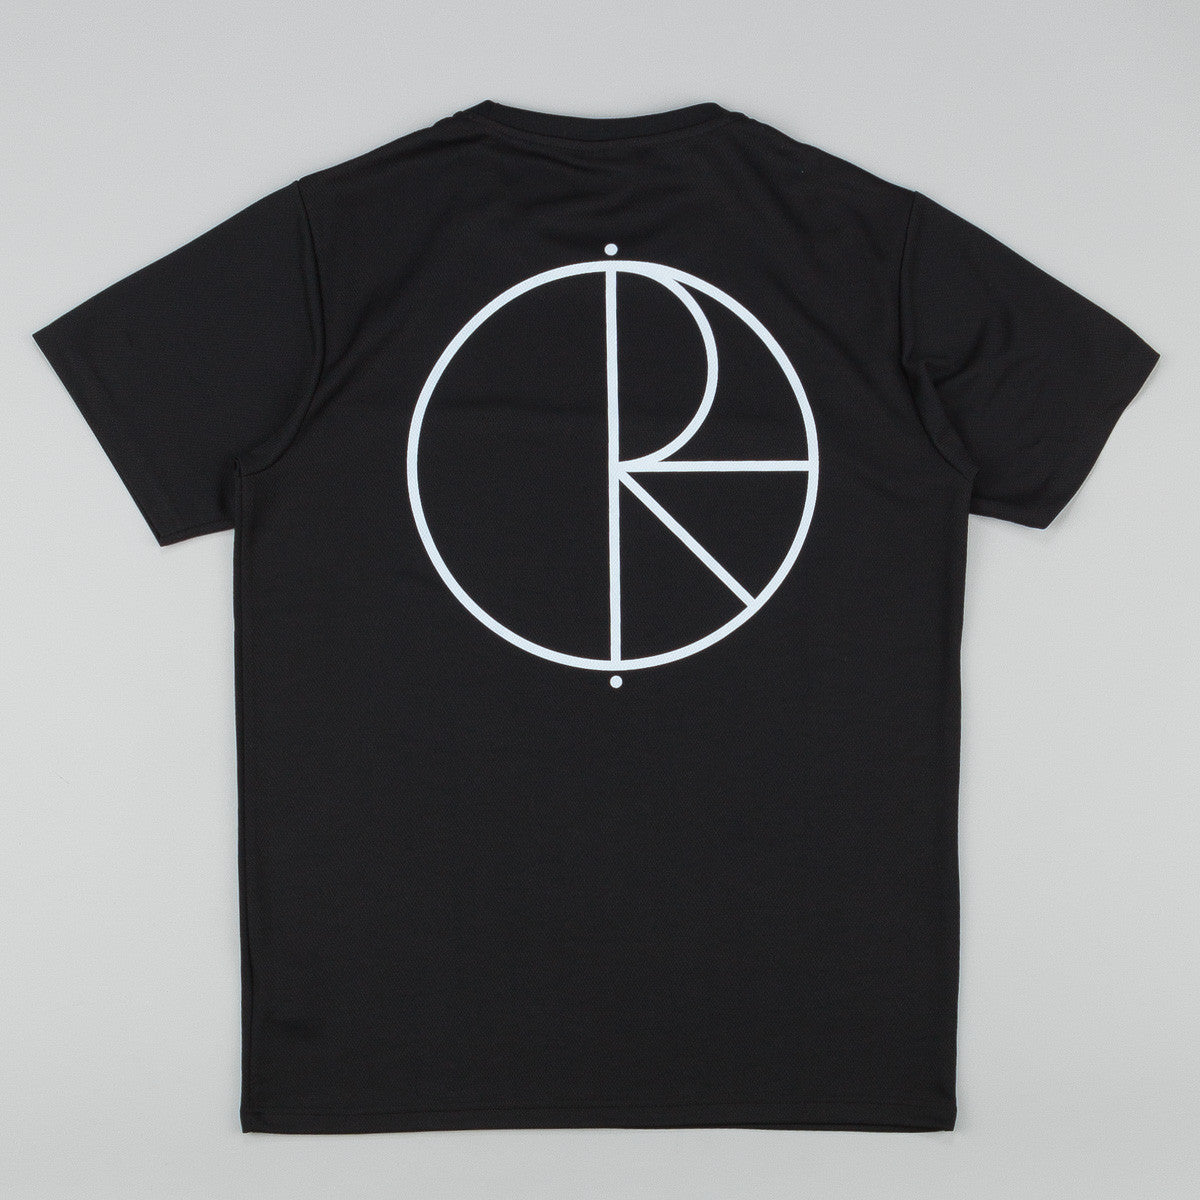 Polar Stroke Logo PSC Fit T-Shirt - Black / White